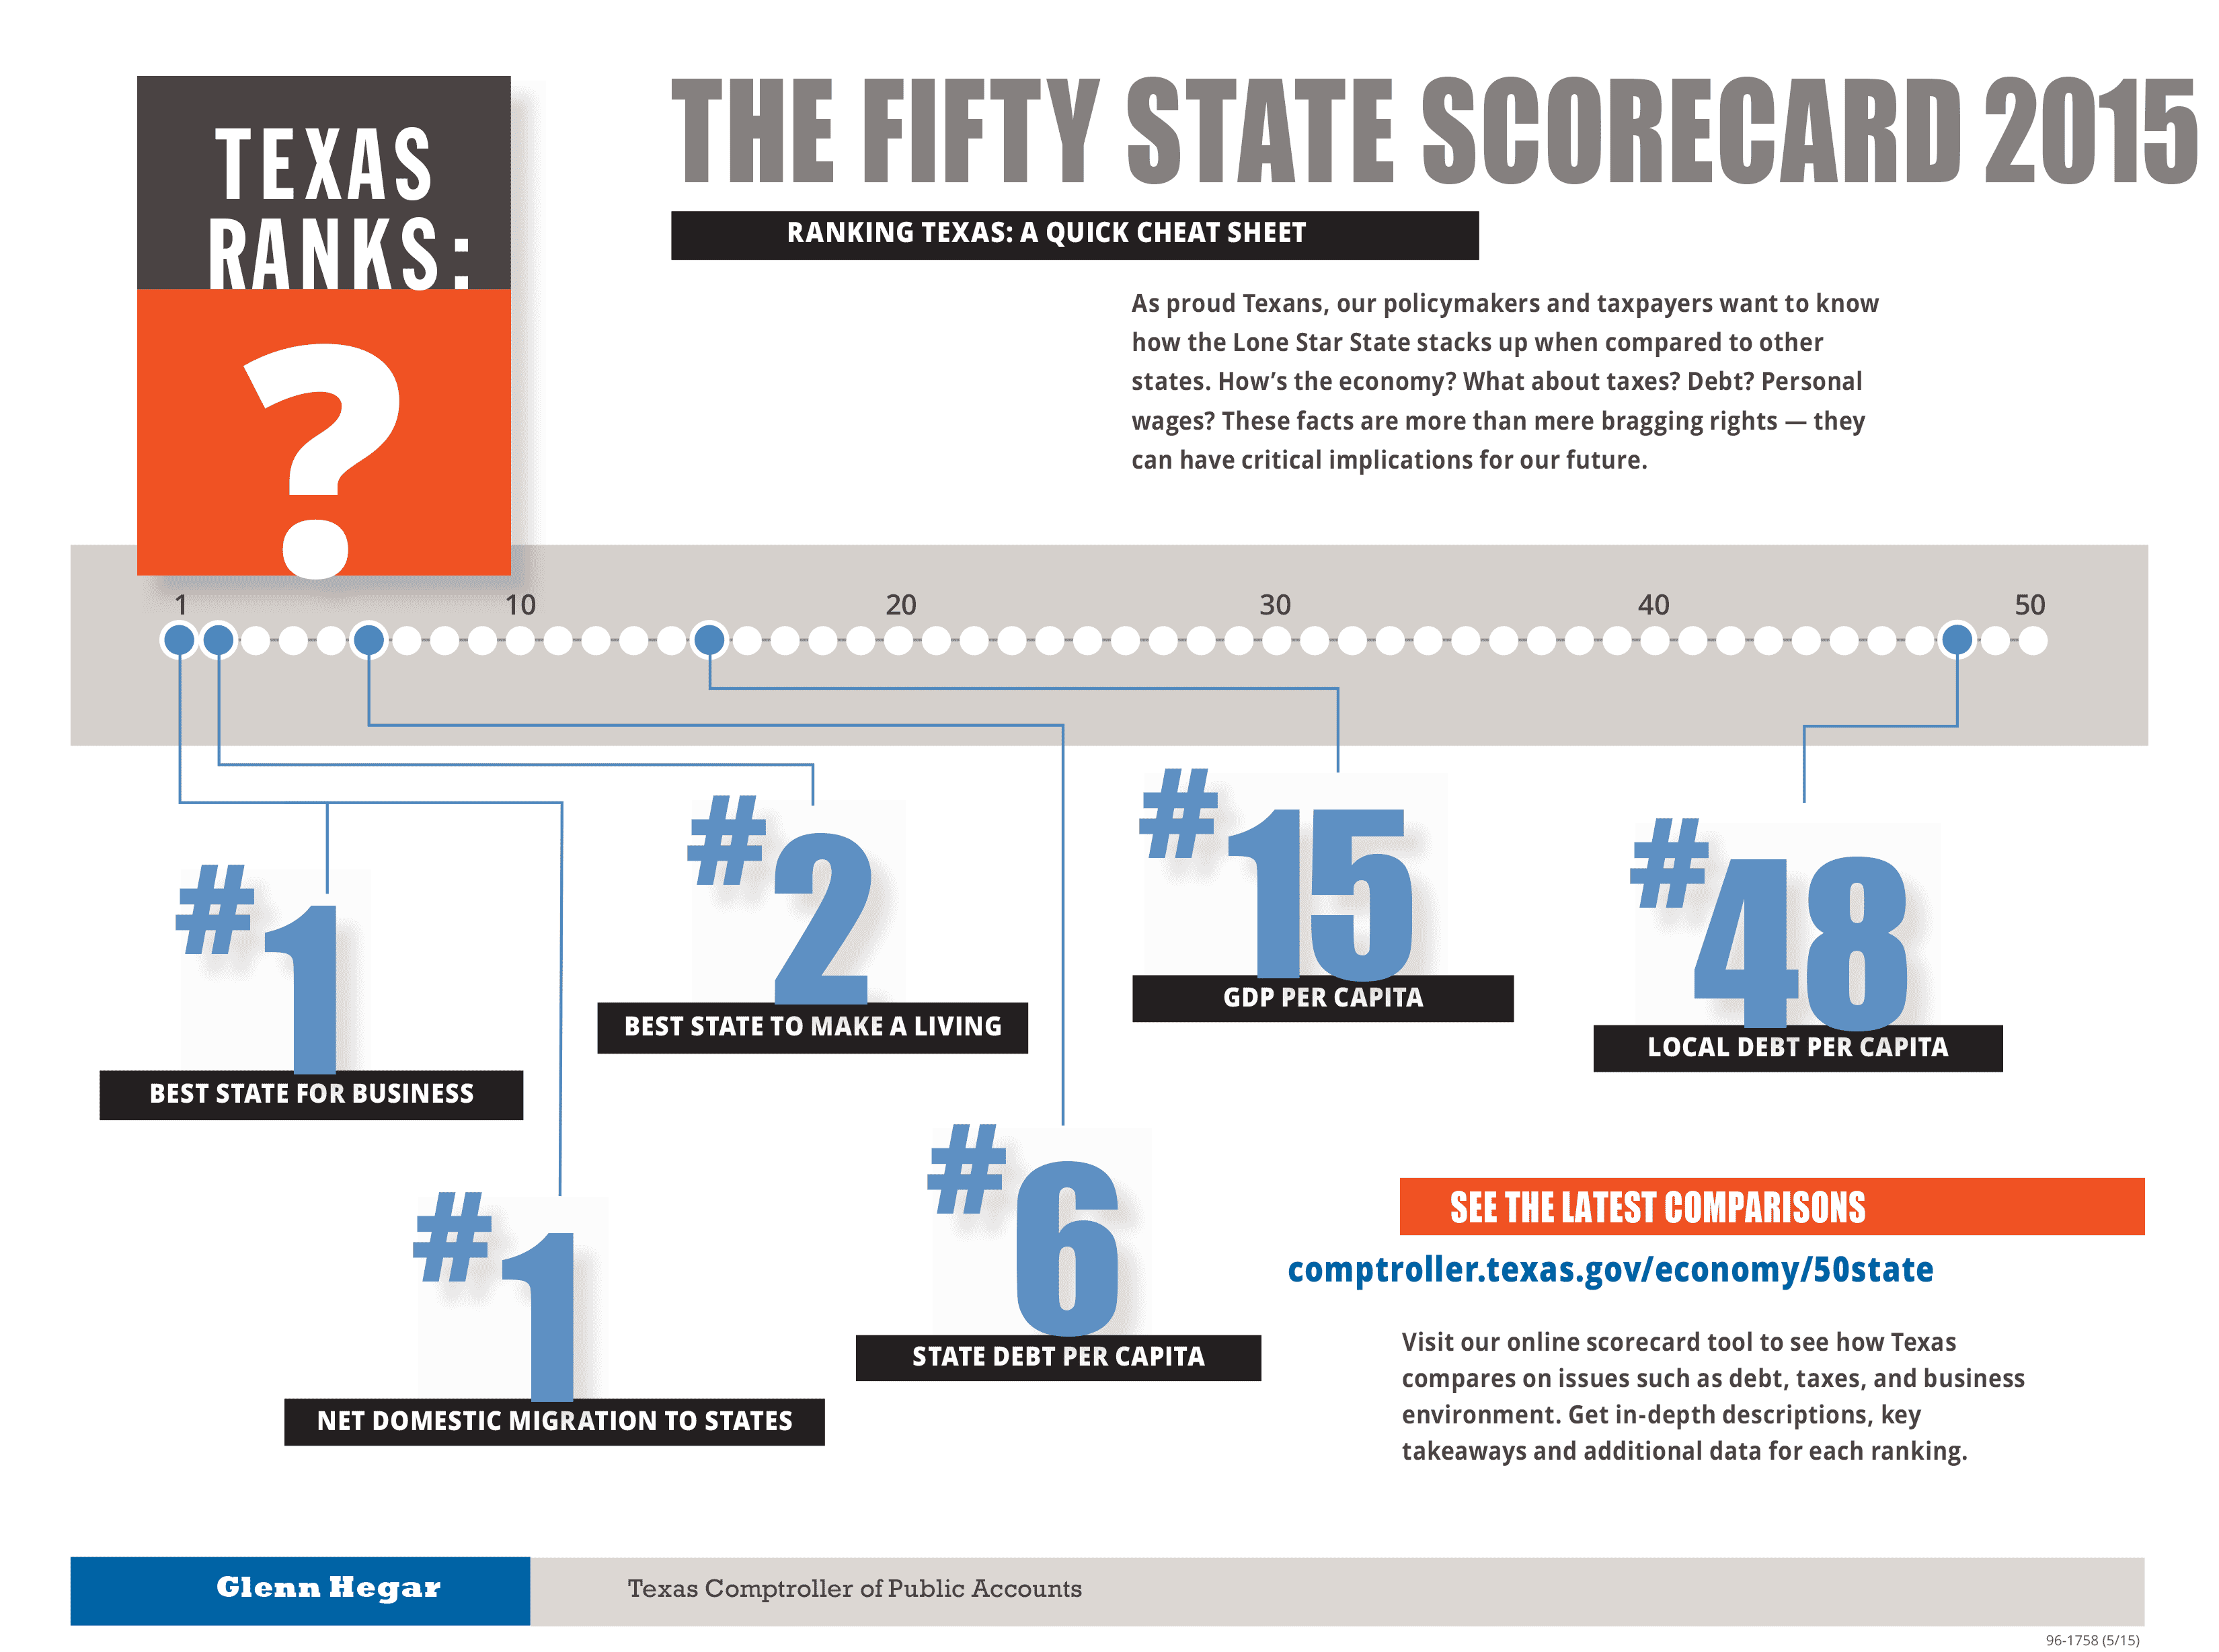 The Fifty State Scoreboard infographic circa 2015